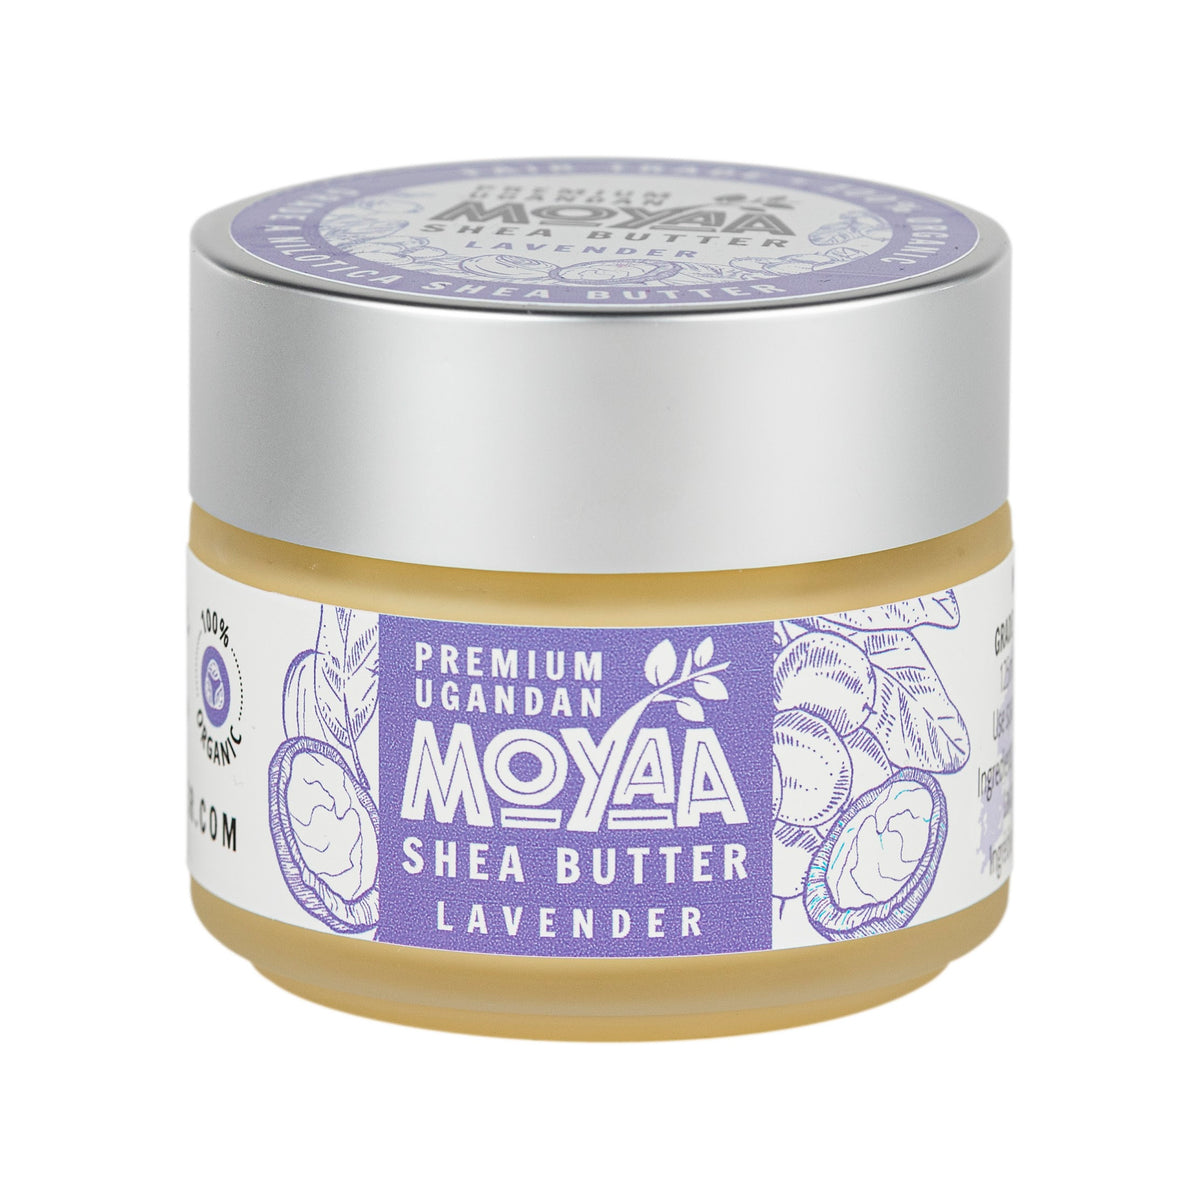 Moyaa Shea Butter - Lavender - 4oz - Moyaa Shea Products Ltd